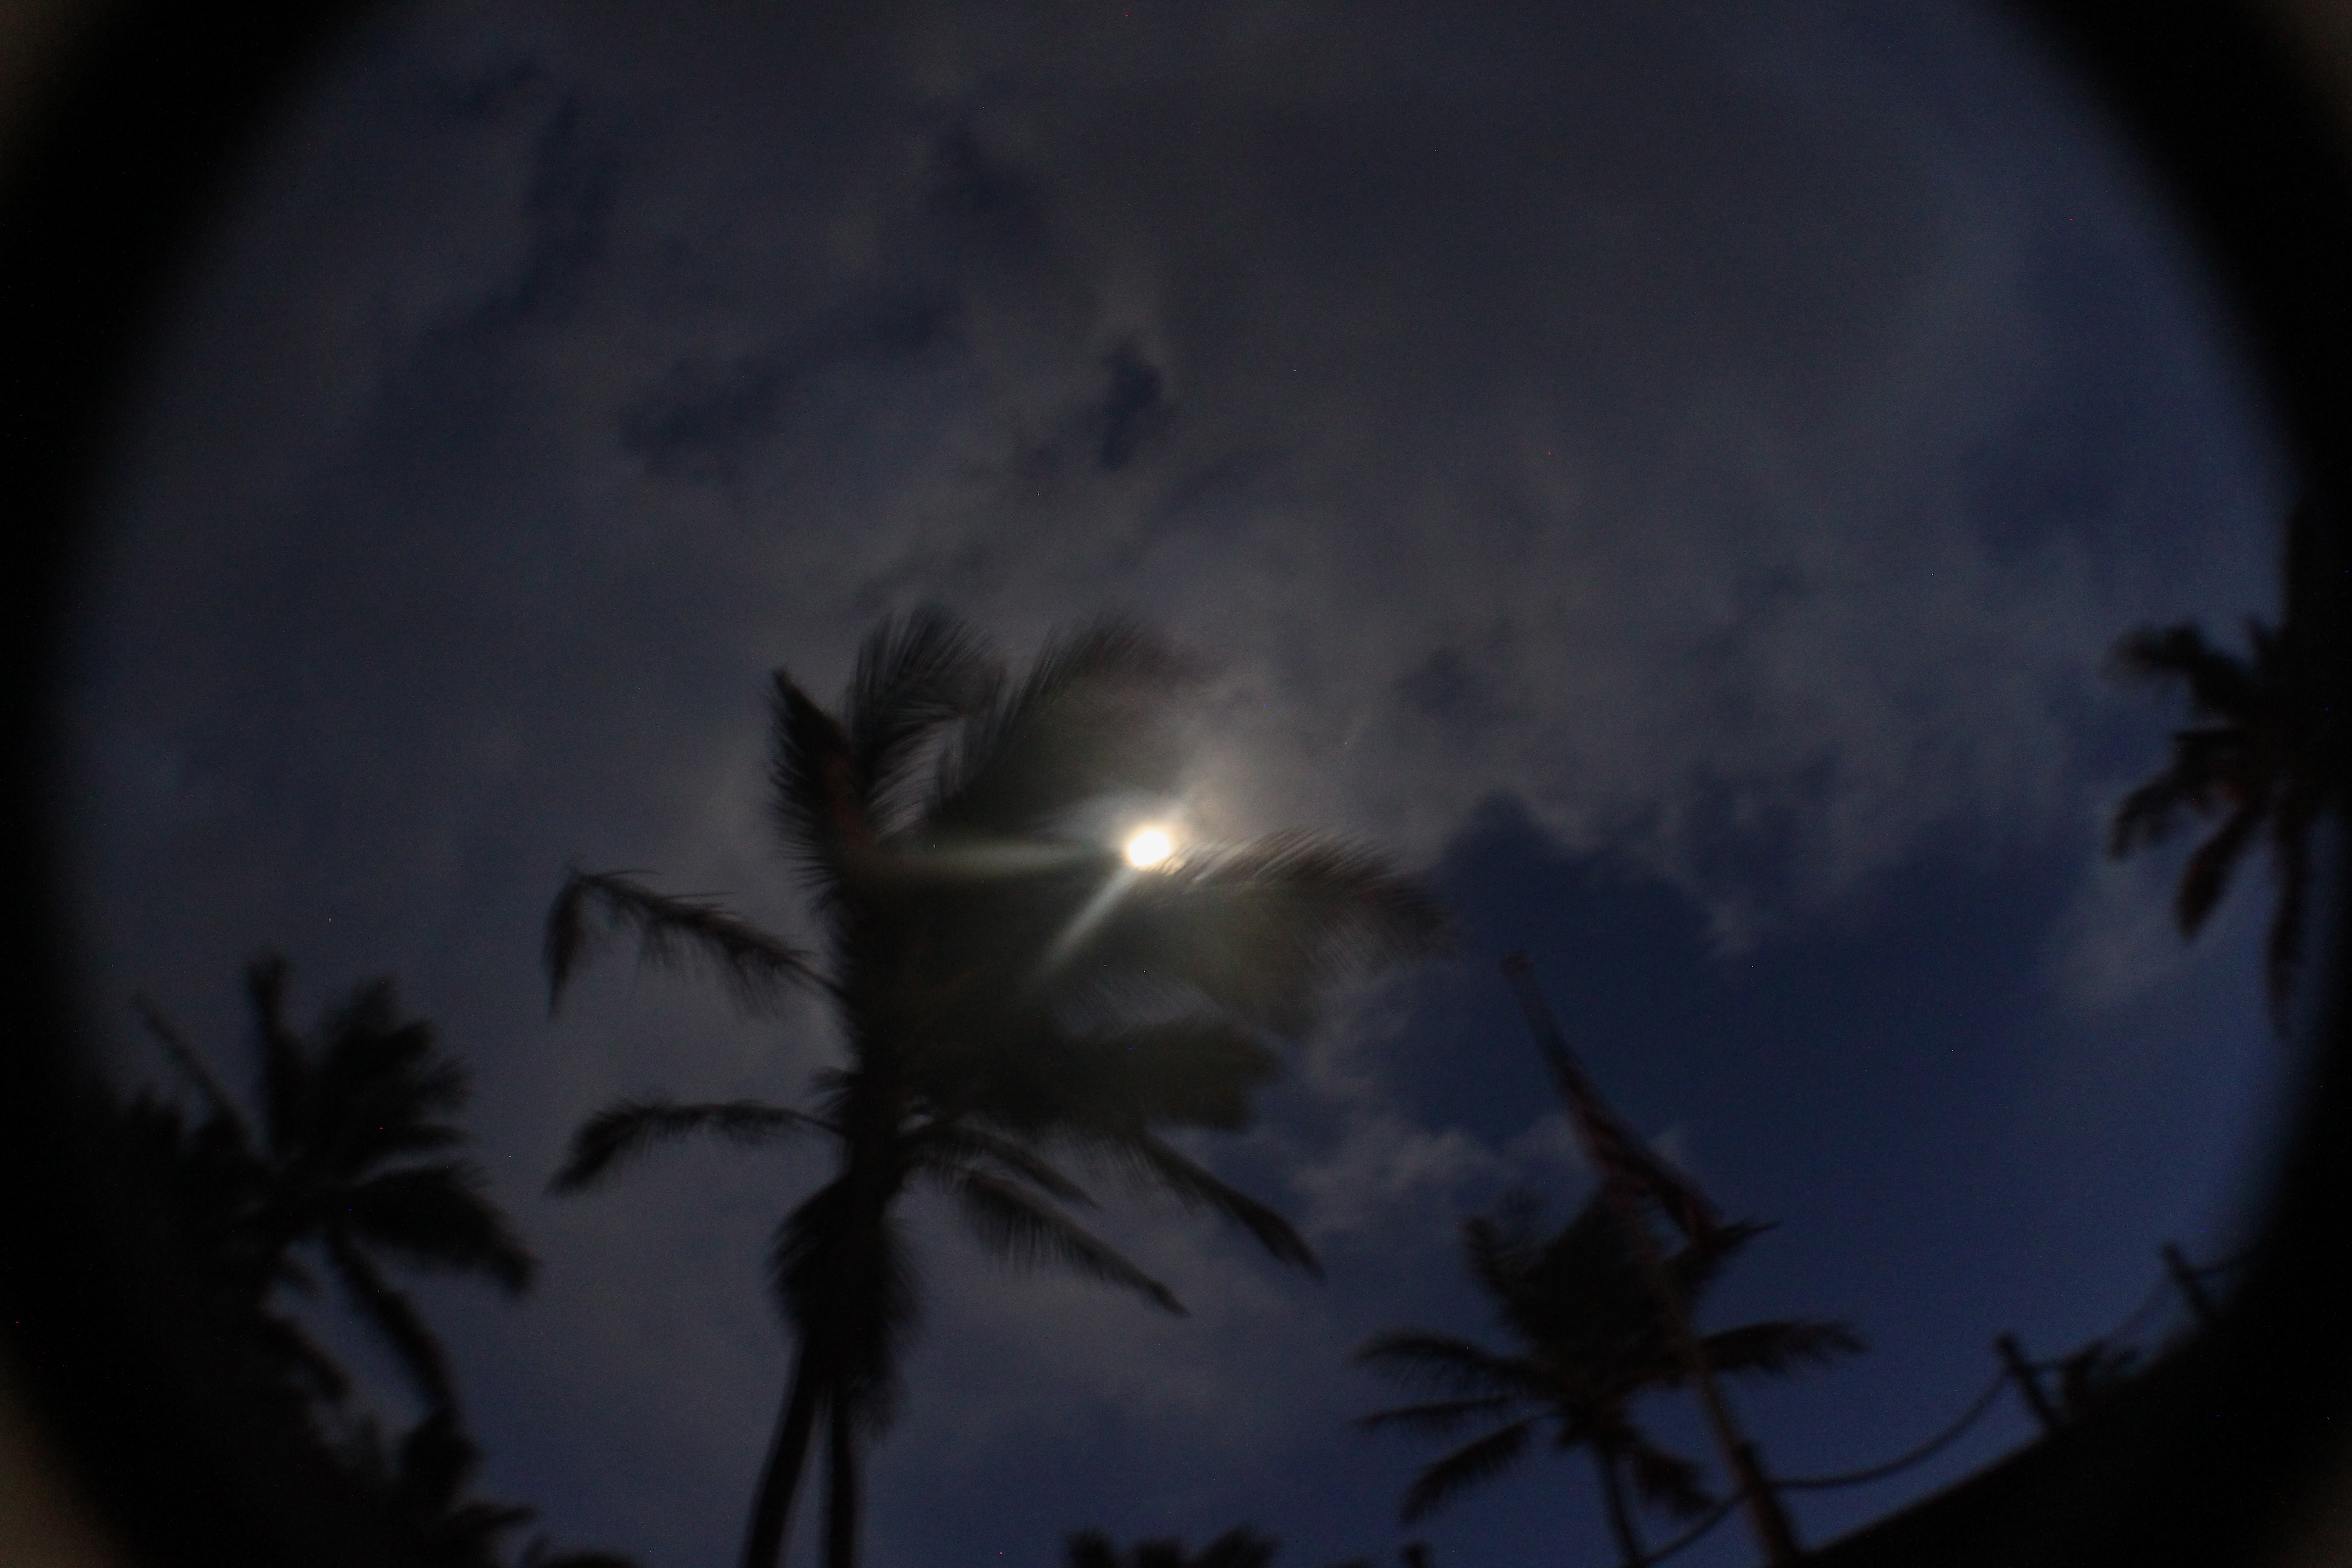 View of the Paia Maui Moon